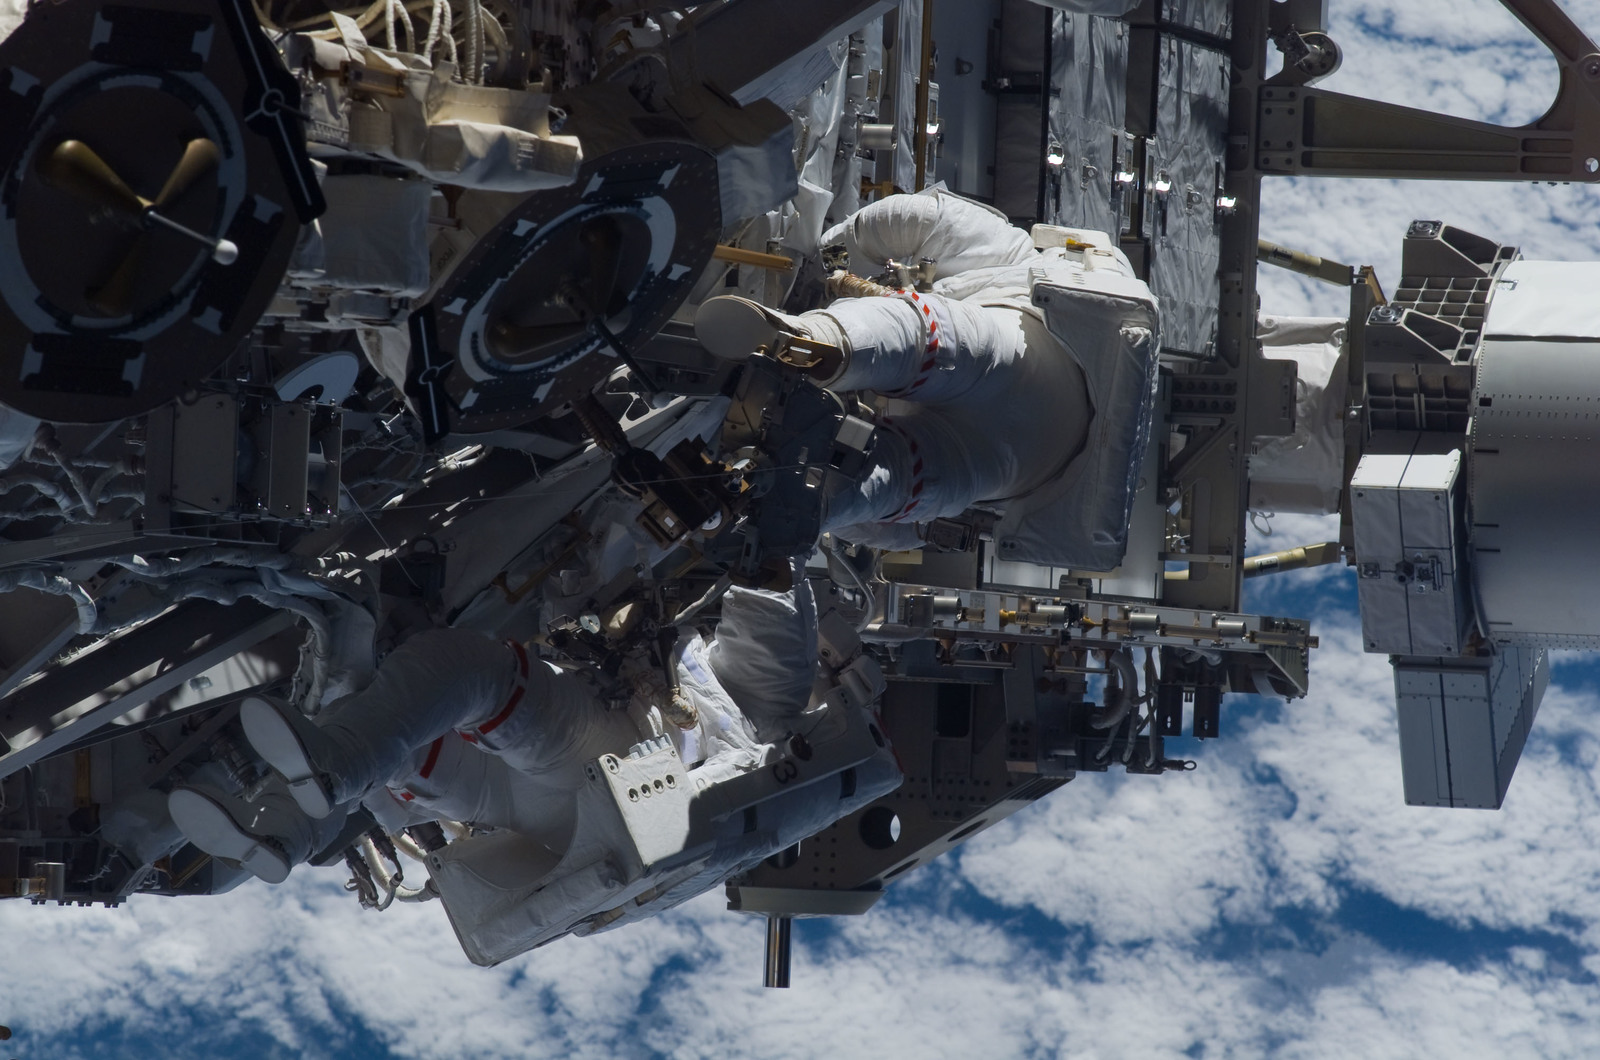 S115E05966 - STS-115 - STS-115 MS Burbank and MacLean prepare the SARJ on the P3 - P4 Truss Segment during EVA